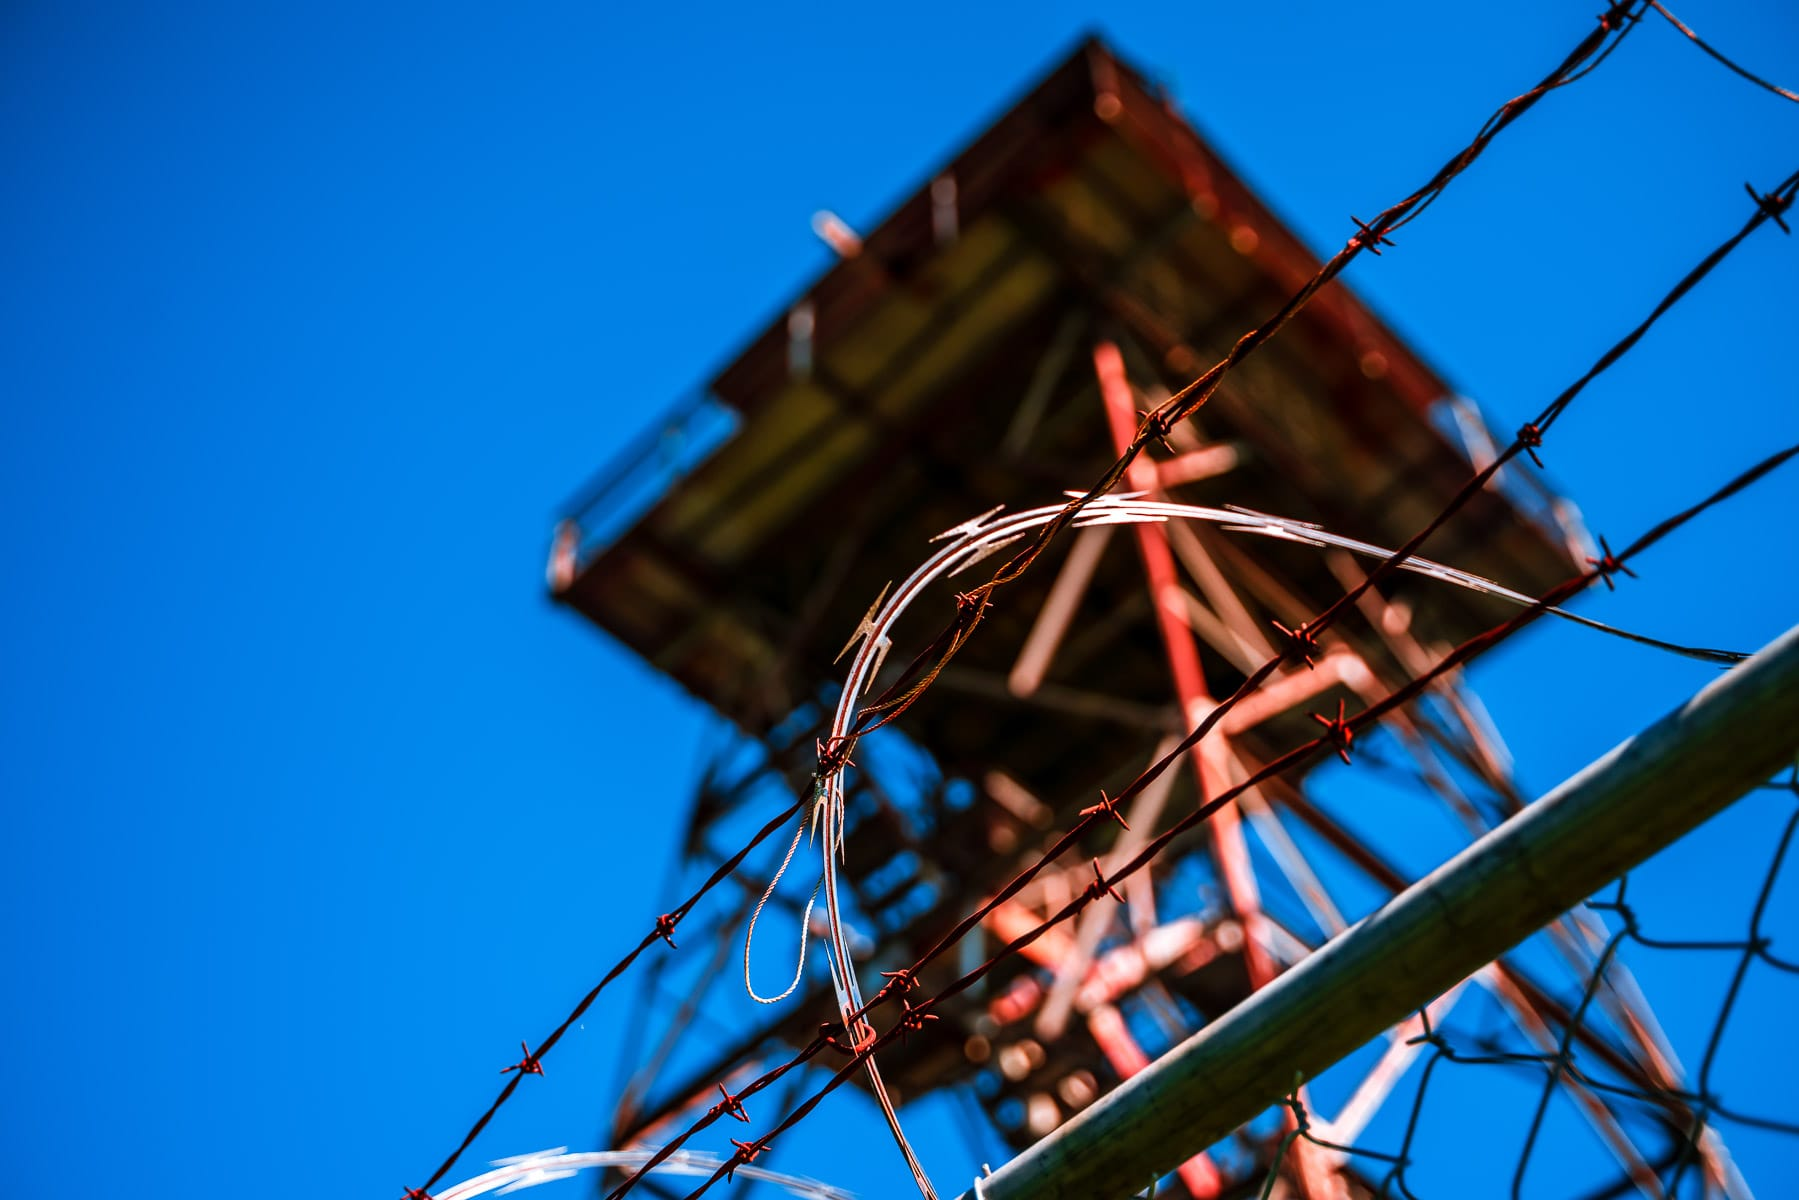 Barbed wire keeps out trespassers at an abandoned fire lookout tower at Rich Mountain, Arkansas.